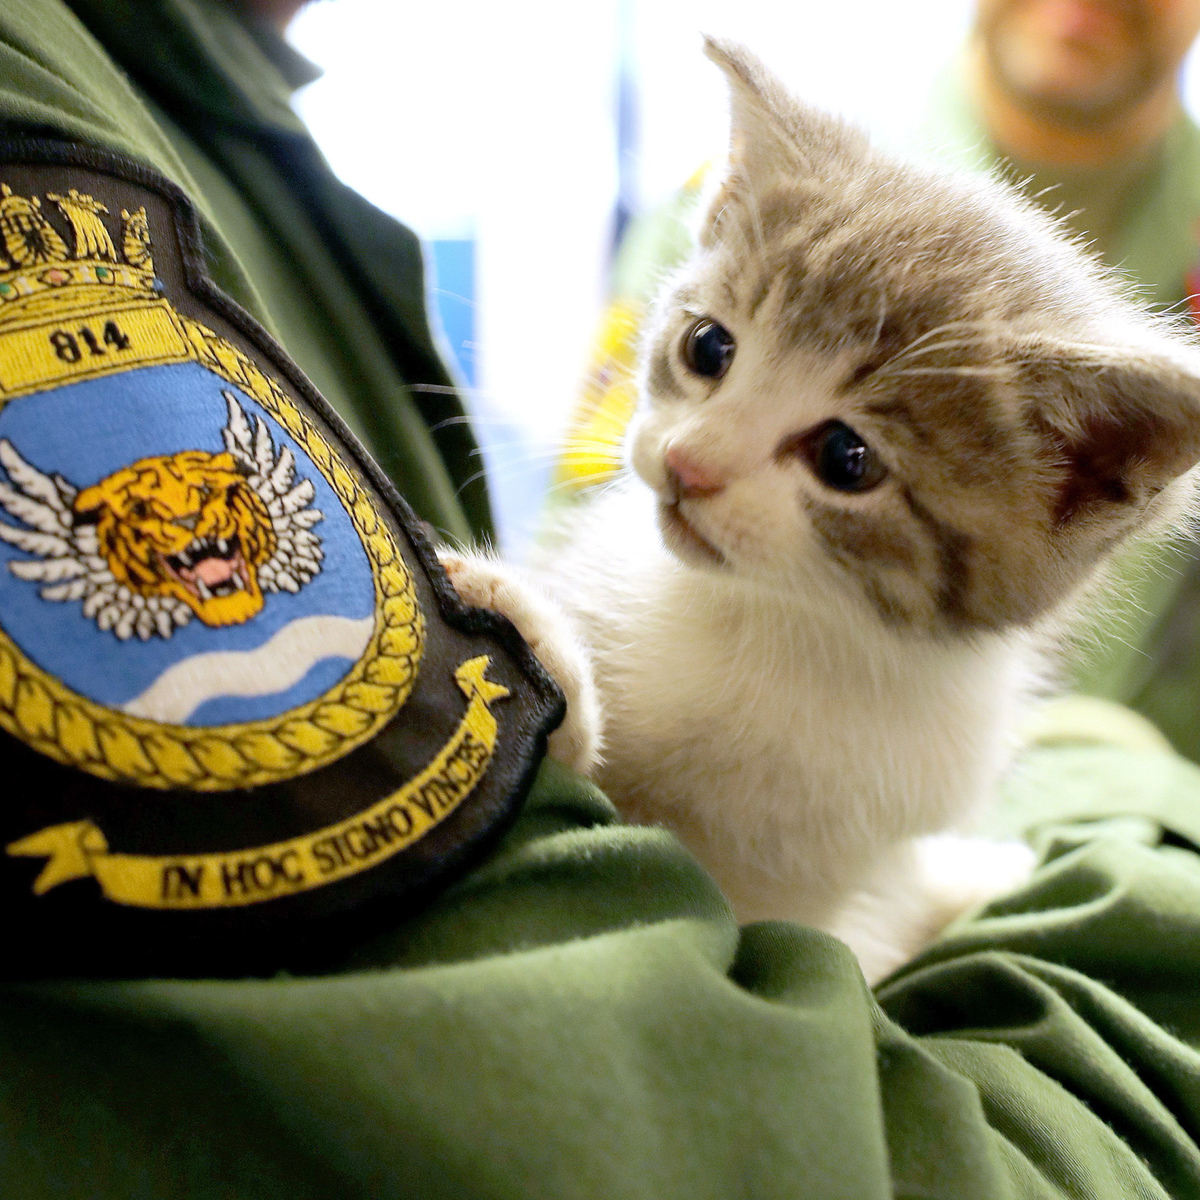 Internet Falls In Love With Pilot Who Saved Kitten After 300 Mile Ordeal SWNS LUCKY KITTEN 04